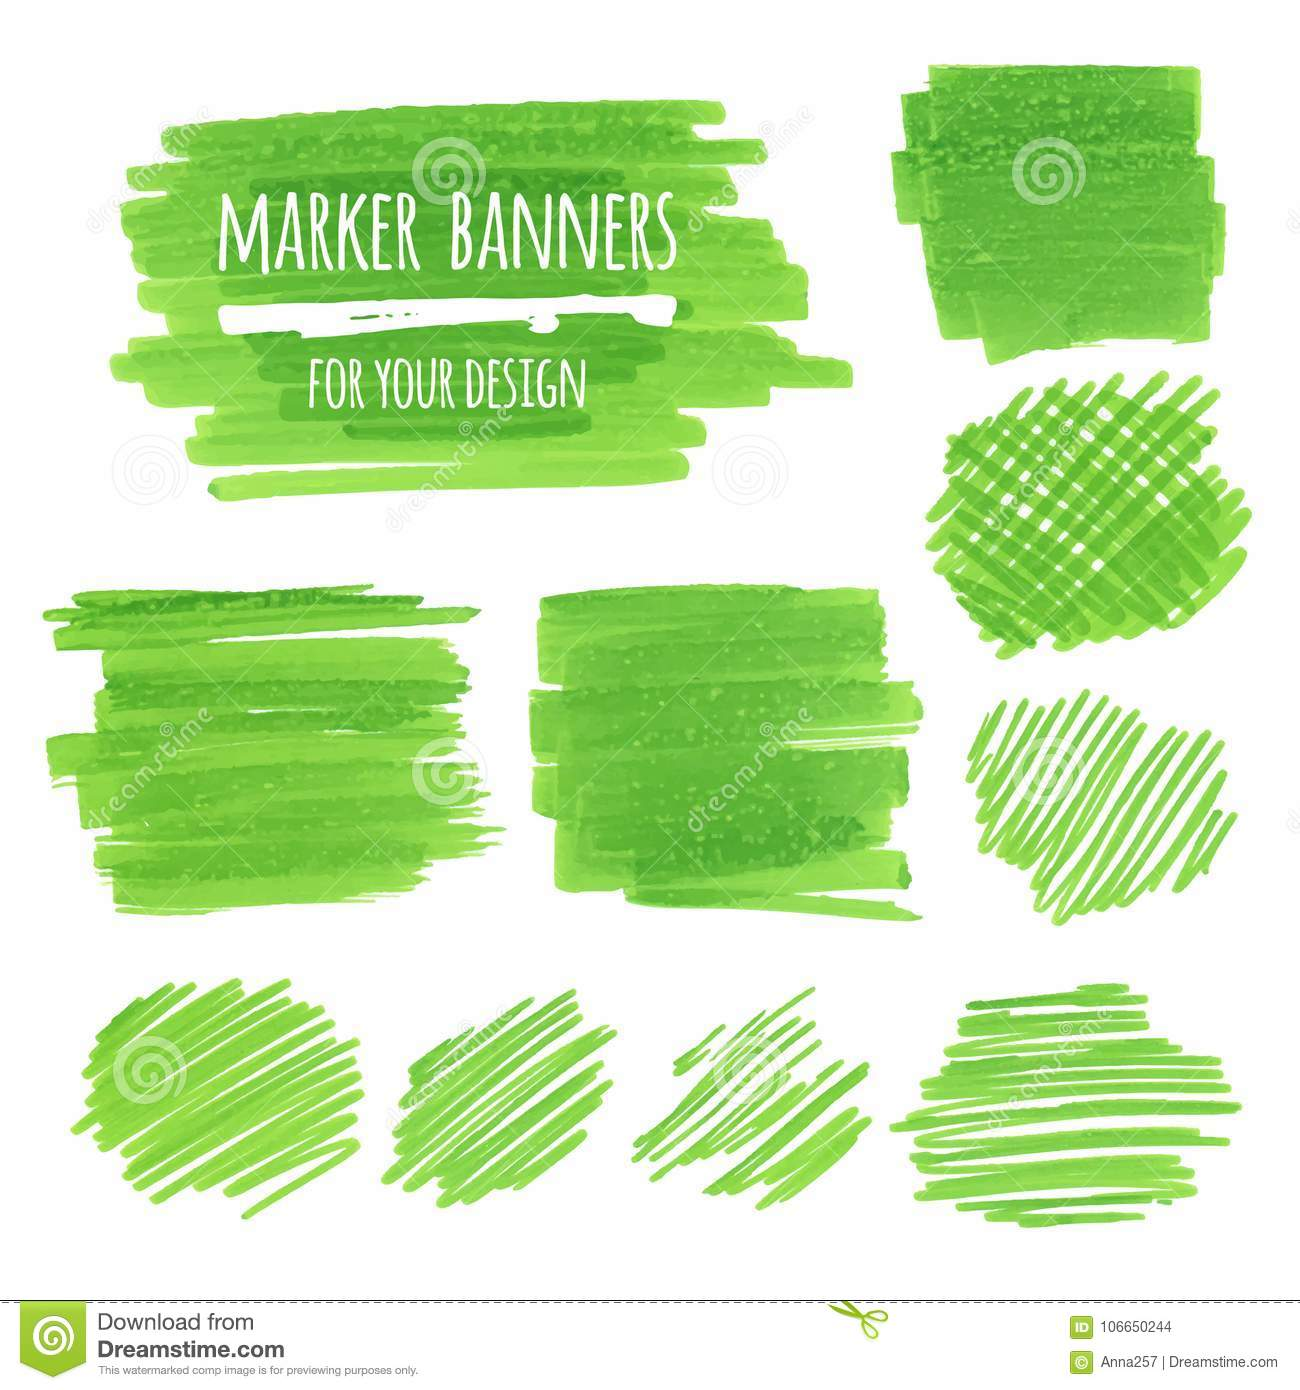 textured marker banners lines and stains template for business